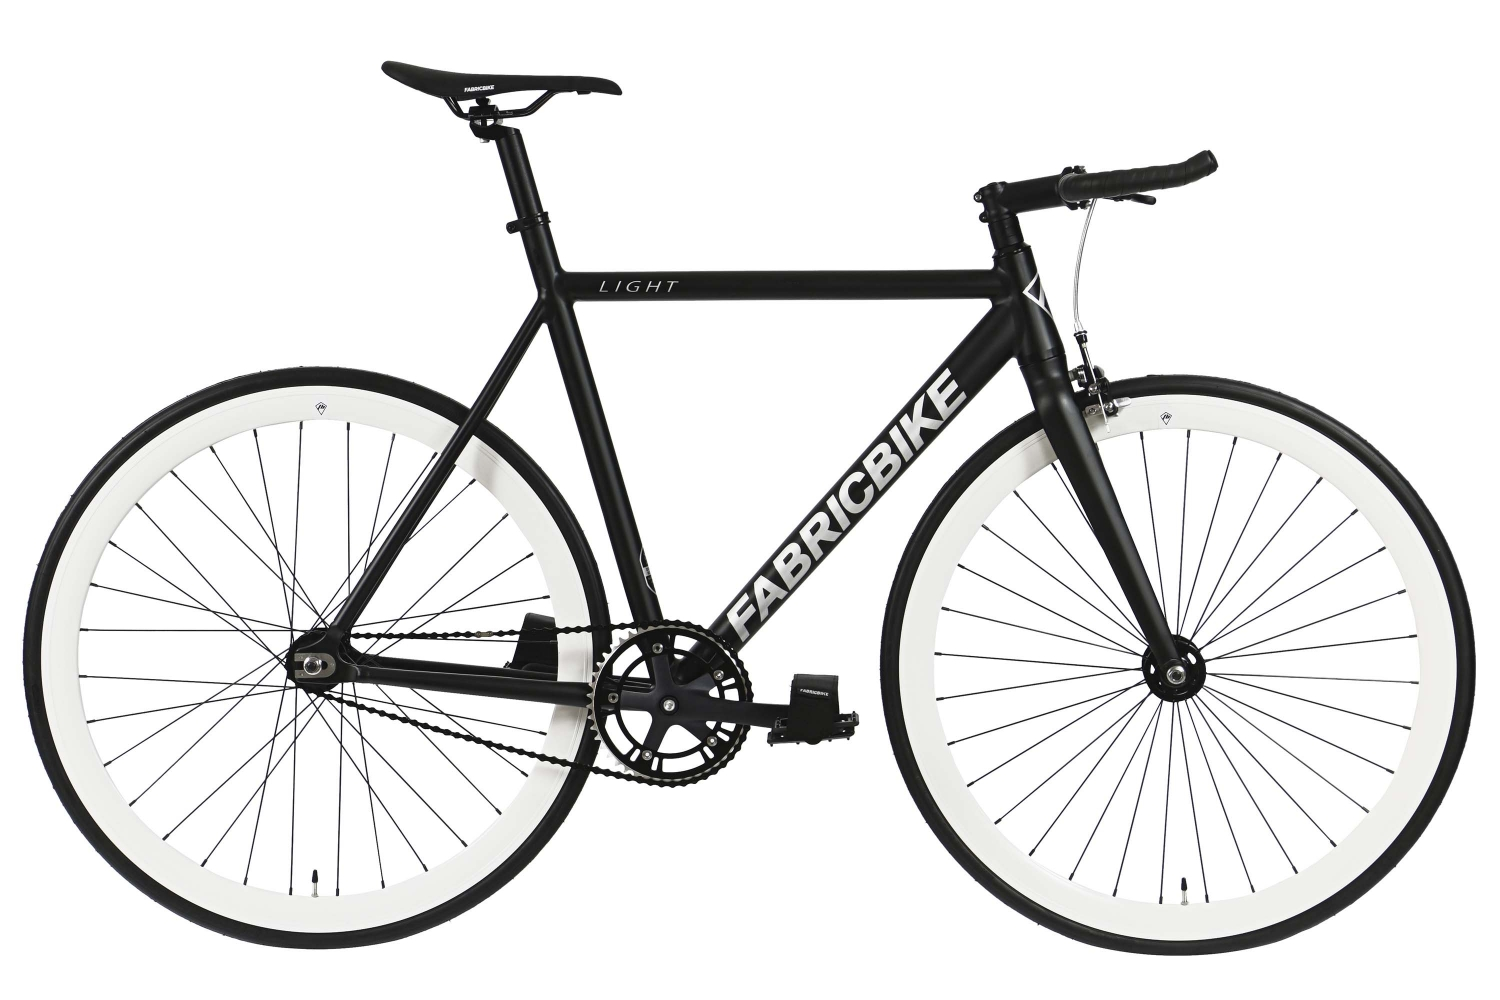 Bici Fixie Fabricbike Light Negra